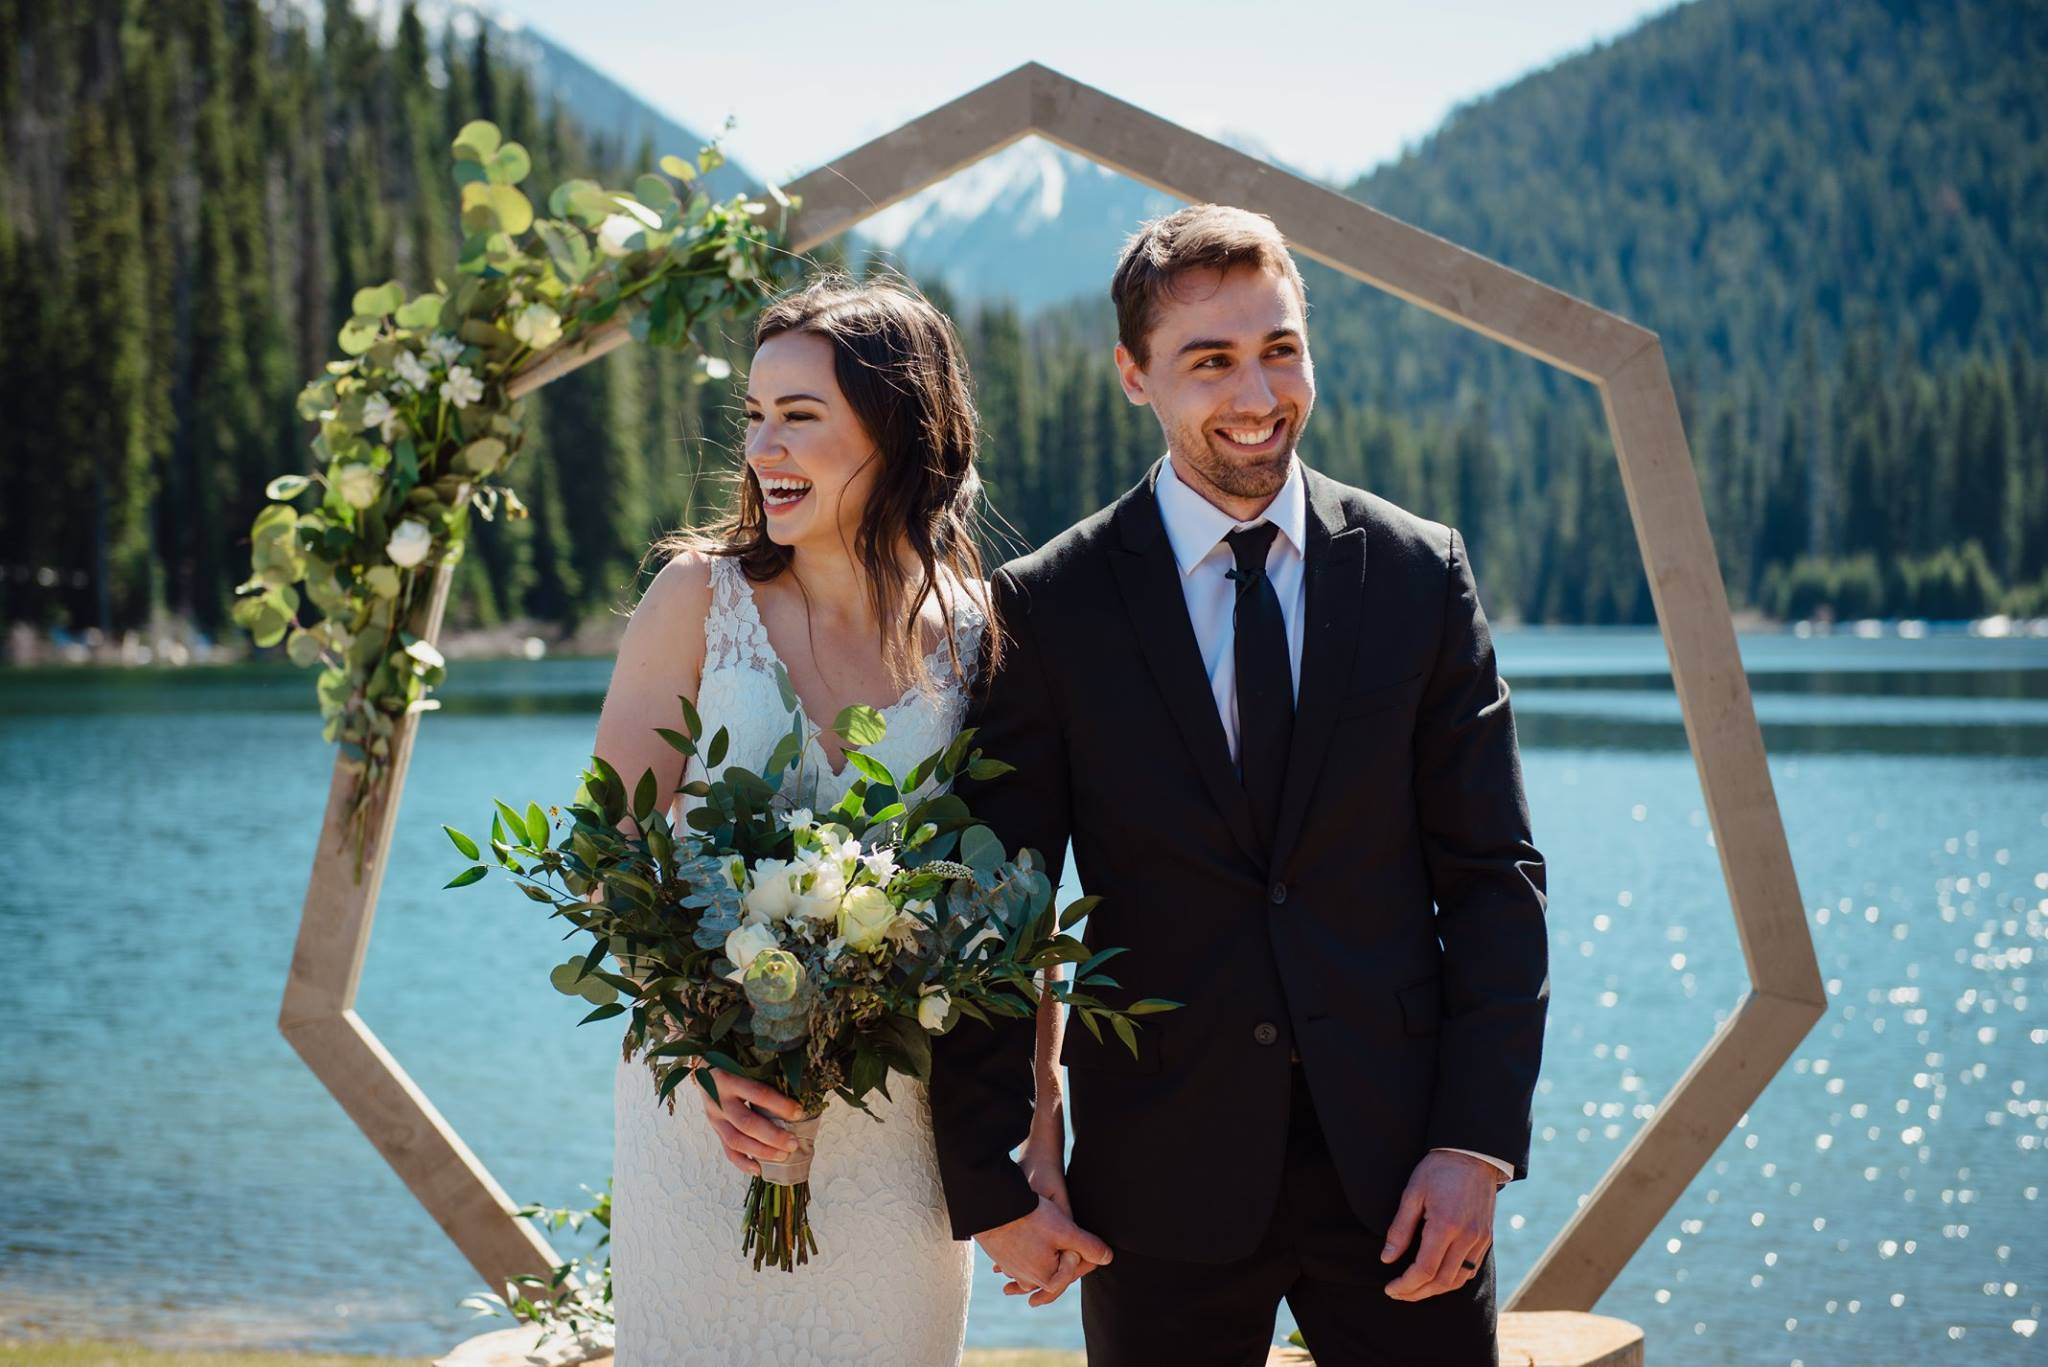 Kelowna wedding photography prices